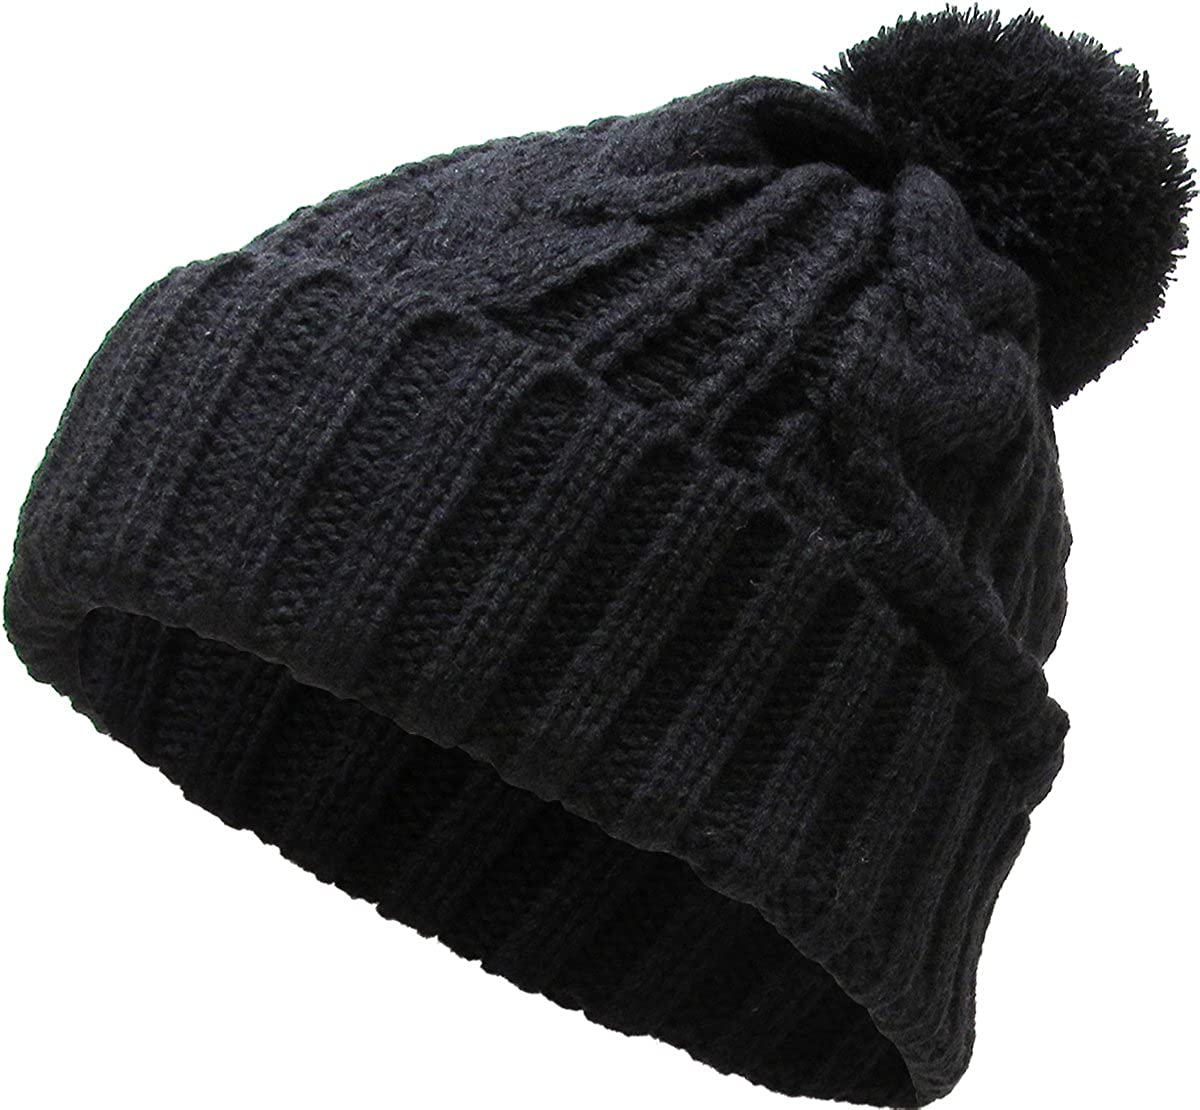 KBETHOS Women's Winter Warm Thick Oversize Cable Knitted Beaine Hat with Pom Pom Ribbed Stretch